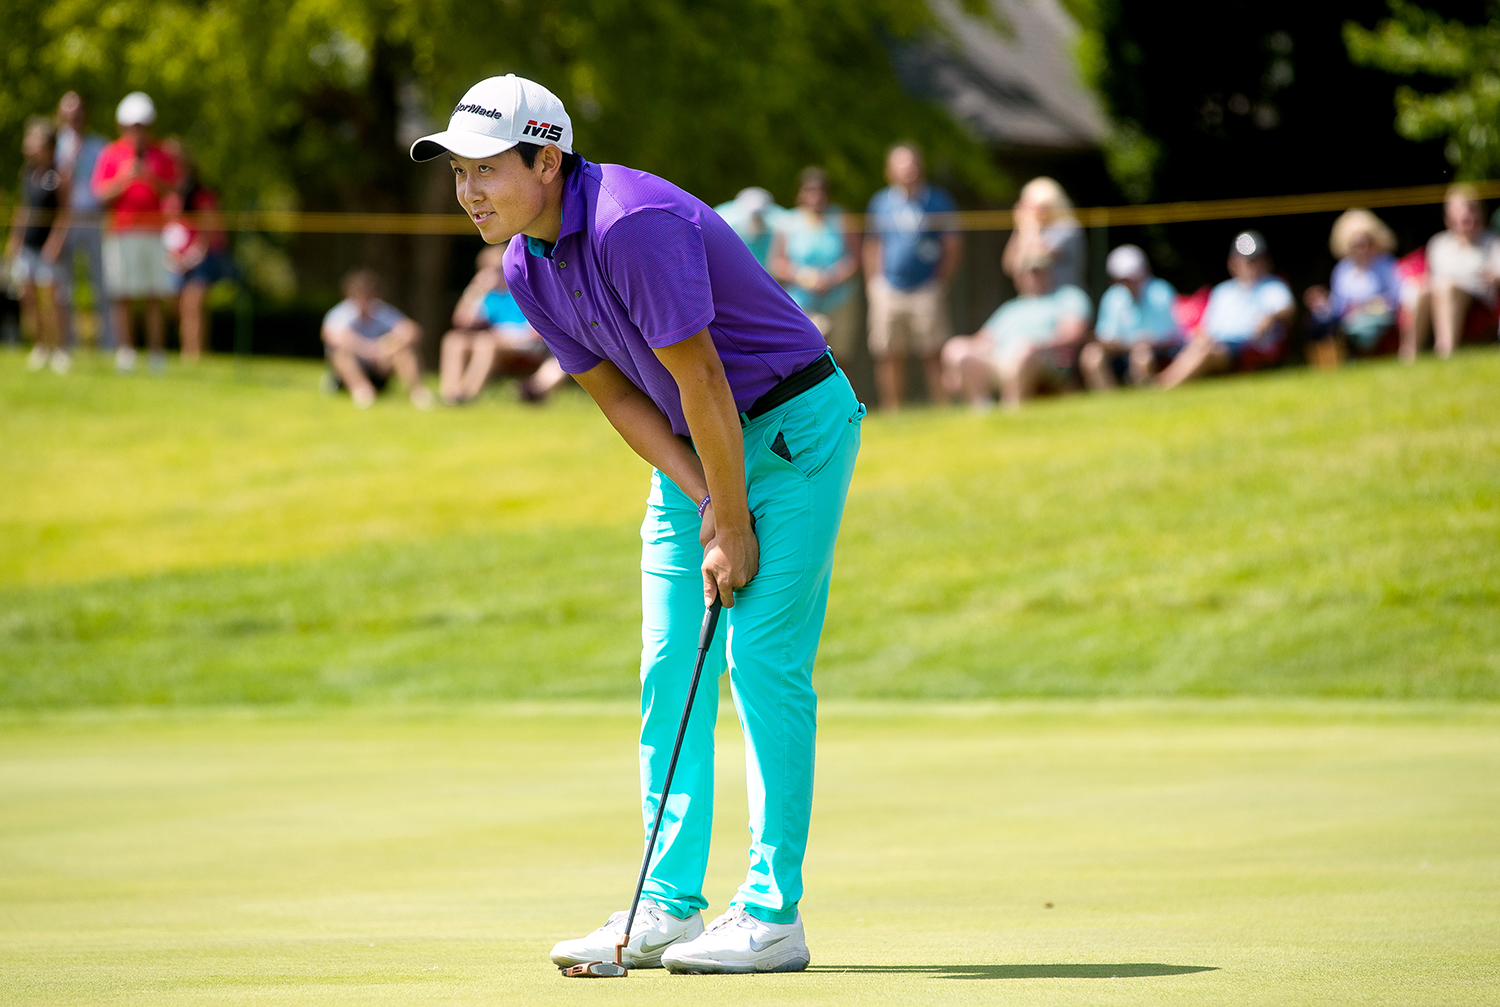 Dylan Wu reacts after his putt on the first of three playoff holes against Xinjun Zhang on the 18th green just missed during the fourth round of Web.com Tour's Lincoln Land Championship presented by LRS Sunday, June 16, 2019. Wu eventually lost on the third playoff hole. [Ted Schurter/The State Journal-Register]